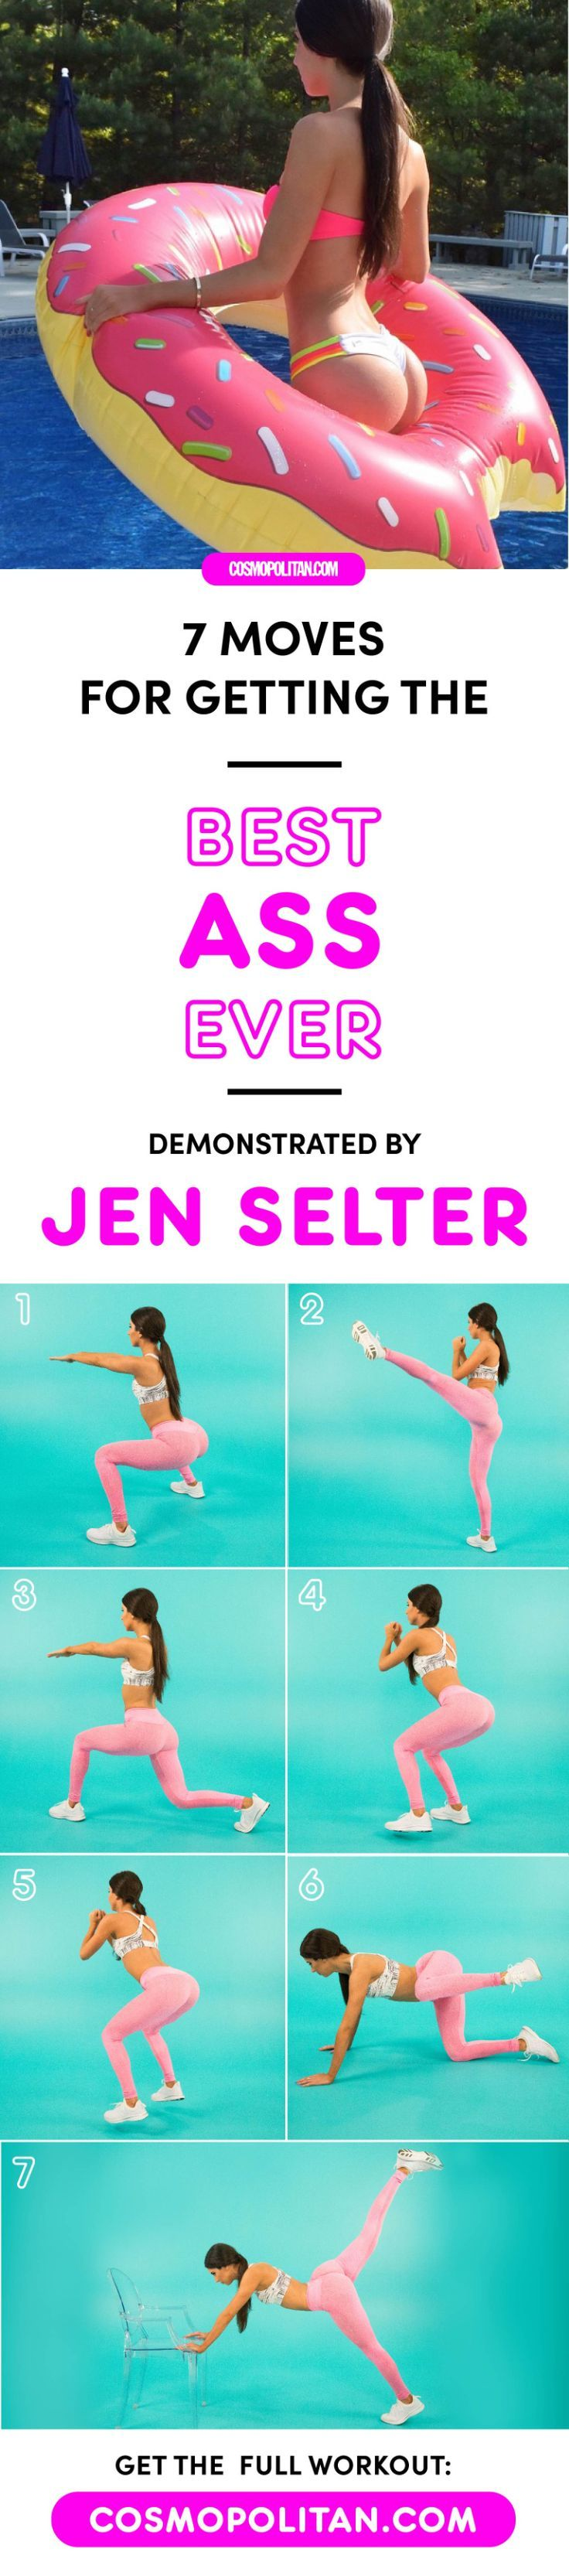 7 Moves for Getting the Best Ass Ever, Demonstrated by Jen Selter – Lorena Alaniz